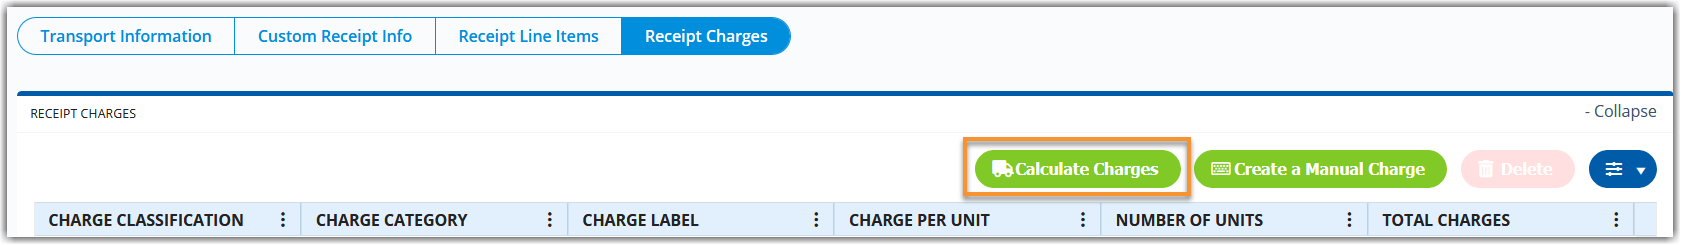 calculatecharges.png